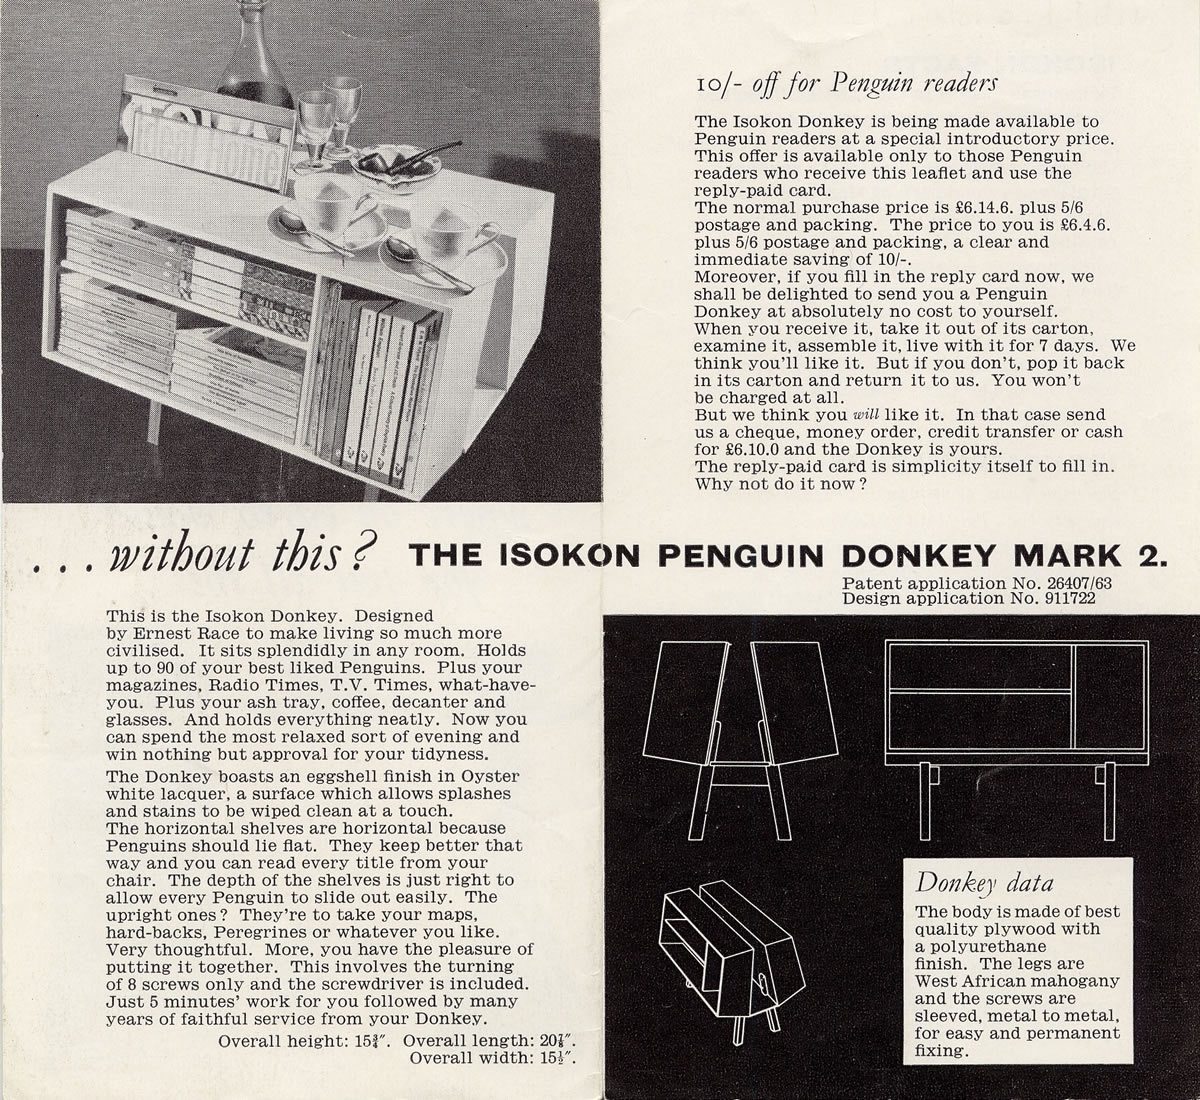 Isokon Penguin Donkey Mark 2 promotional leaflet.